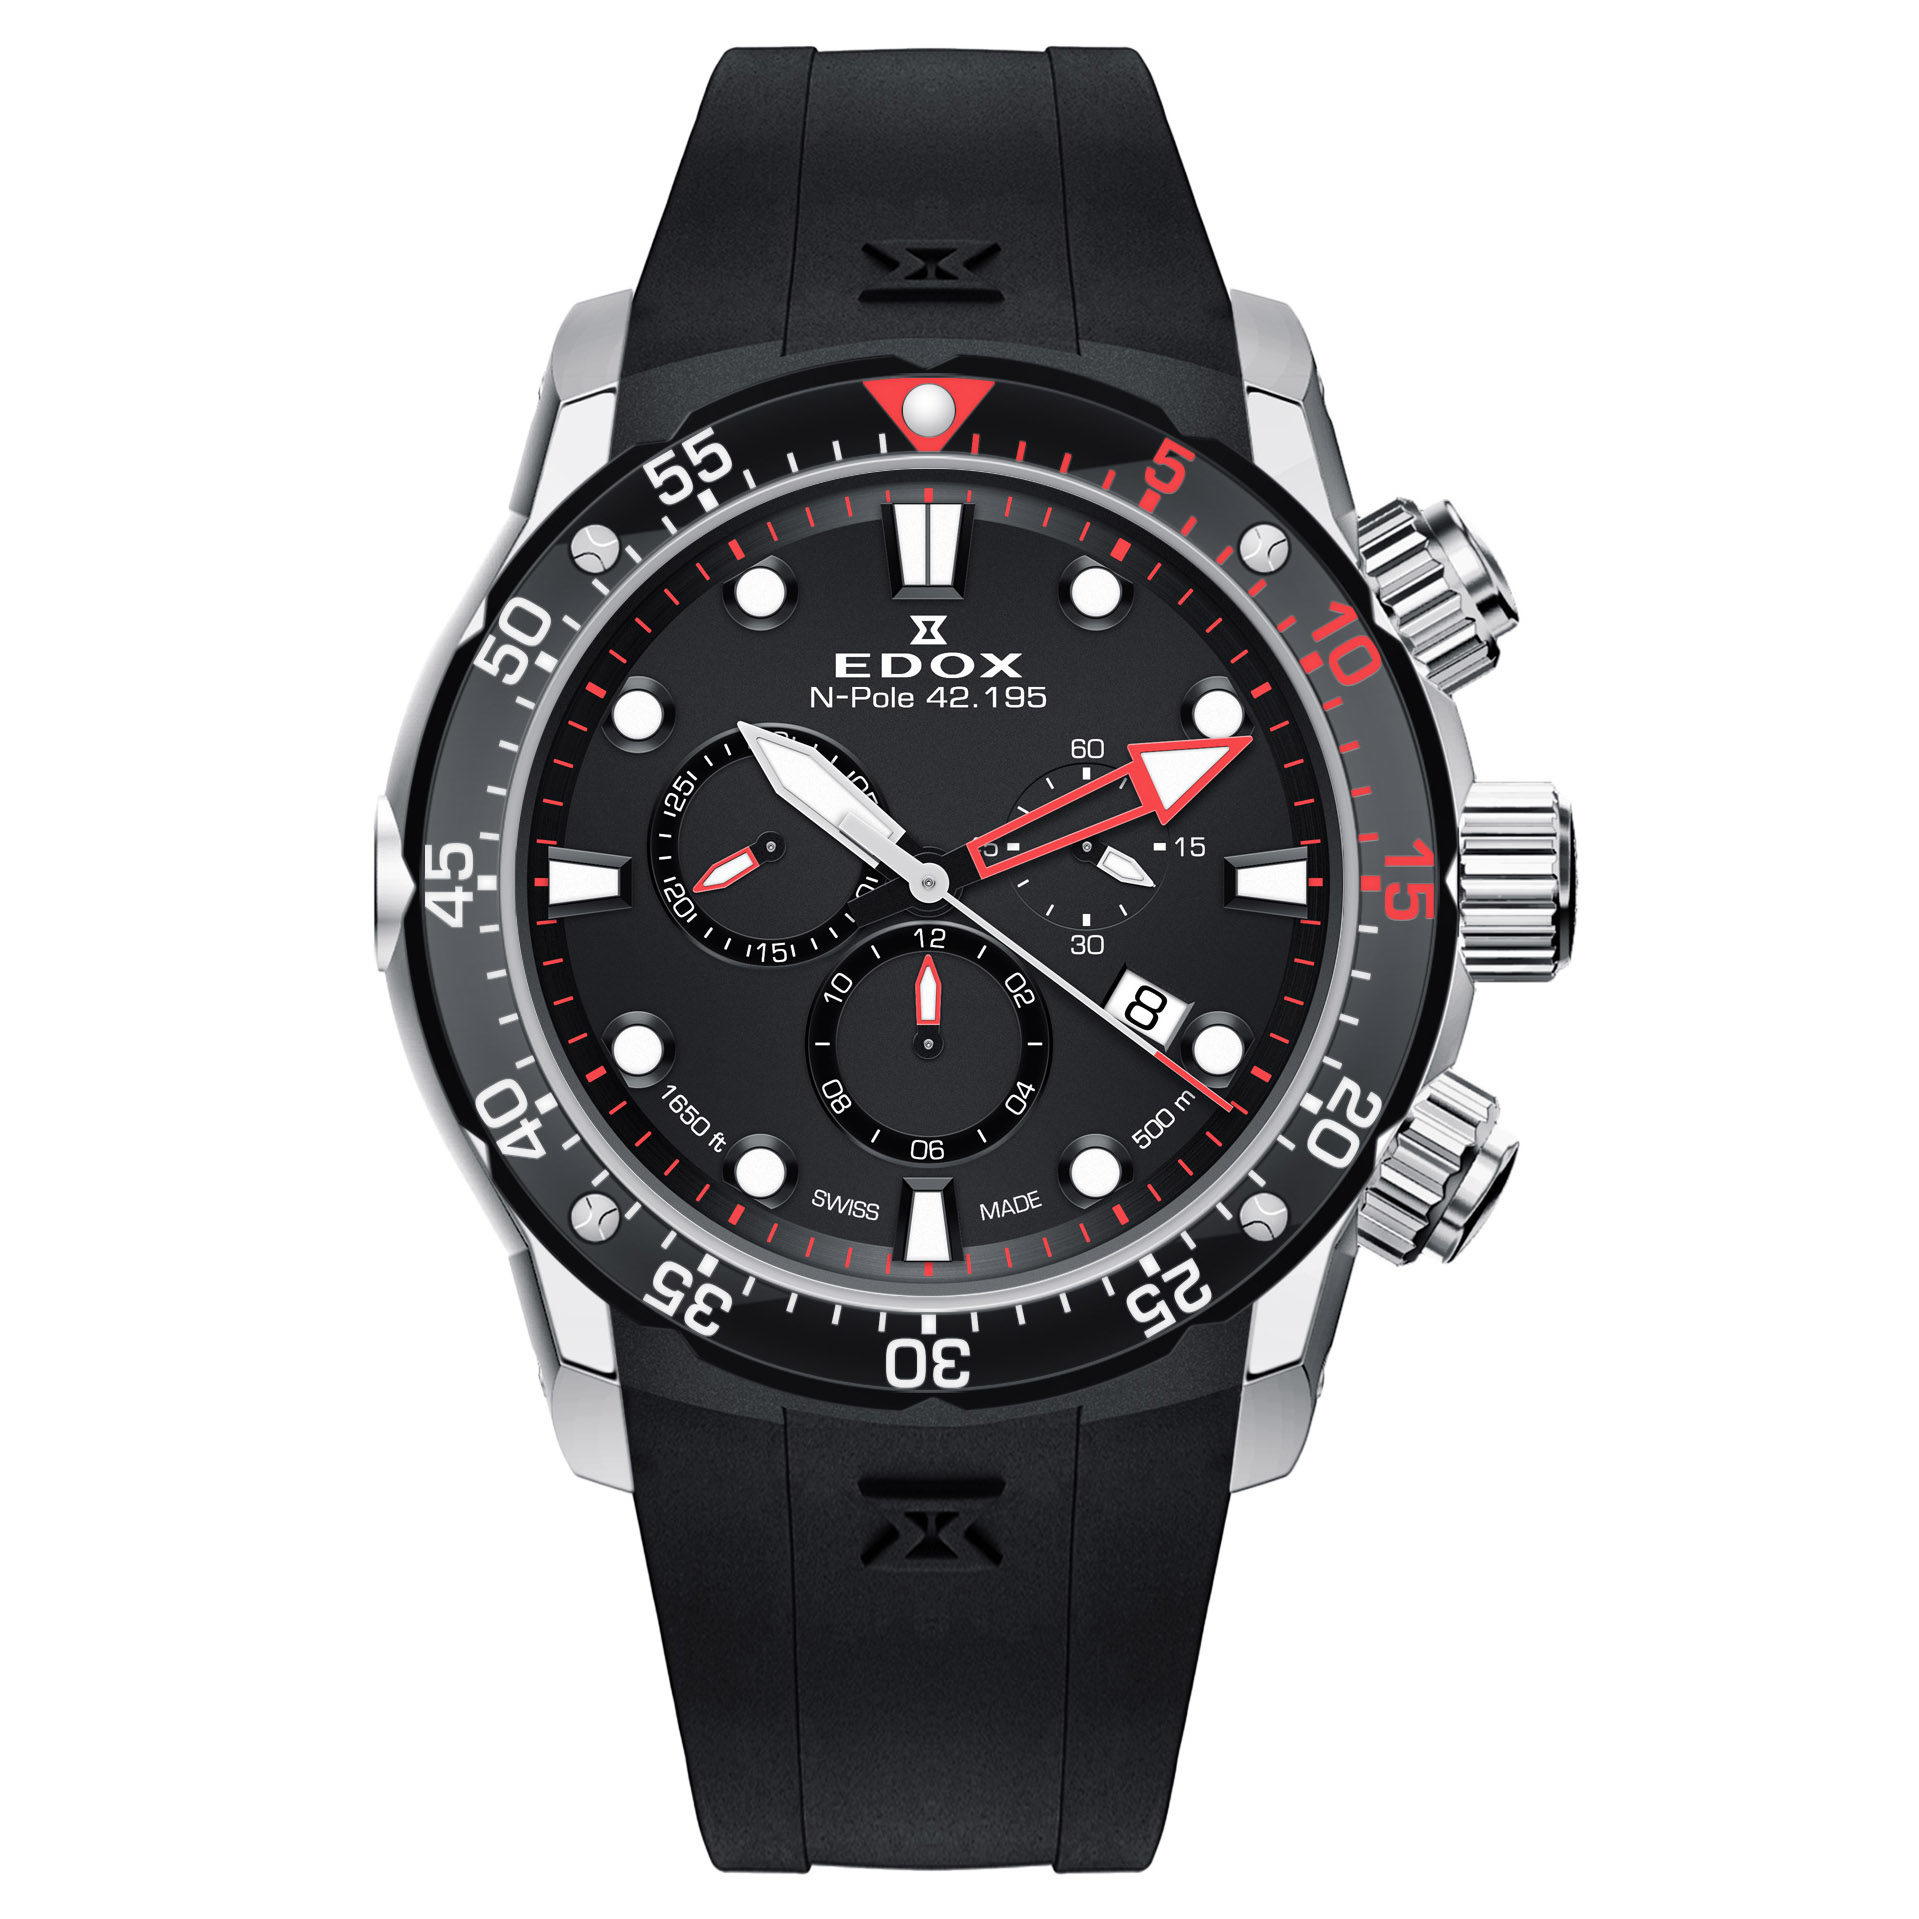 Edox N-Pole 42.195 Limited Edition